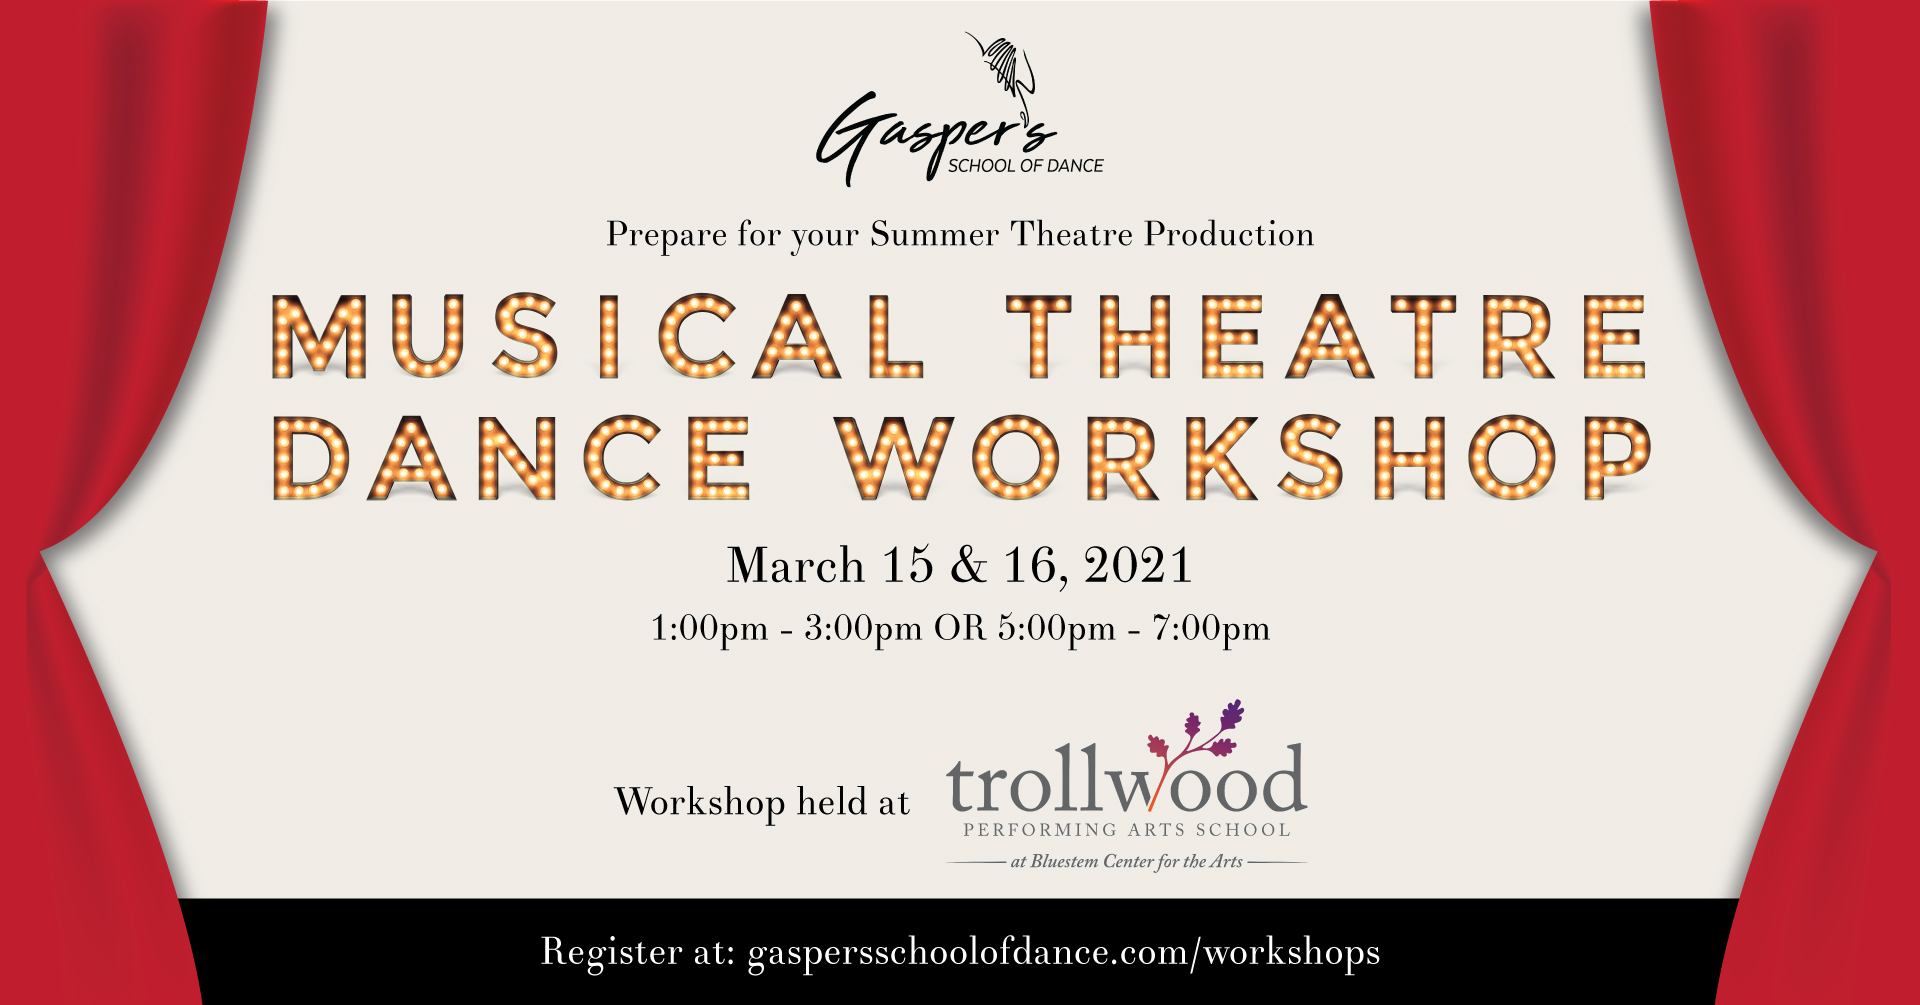 Musical Theater Dance Workshop presented by Gasper's School of Dance